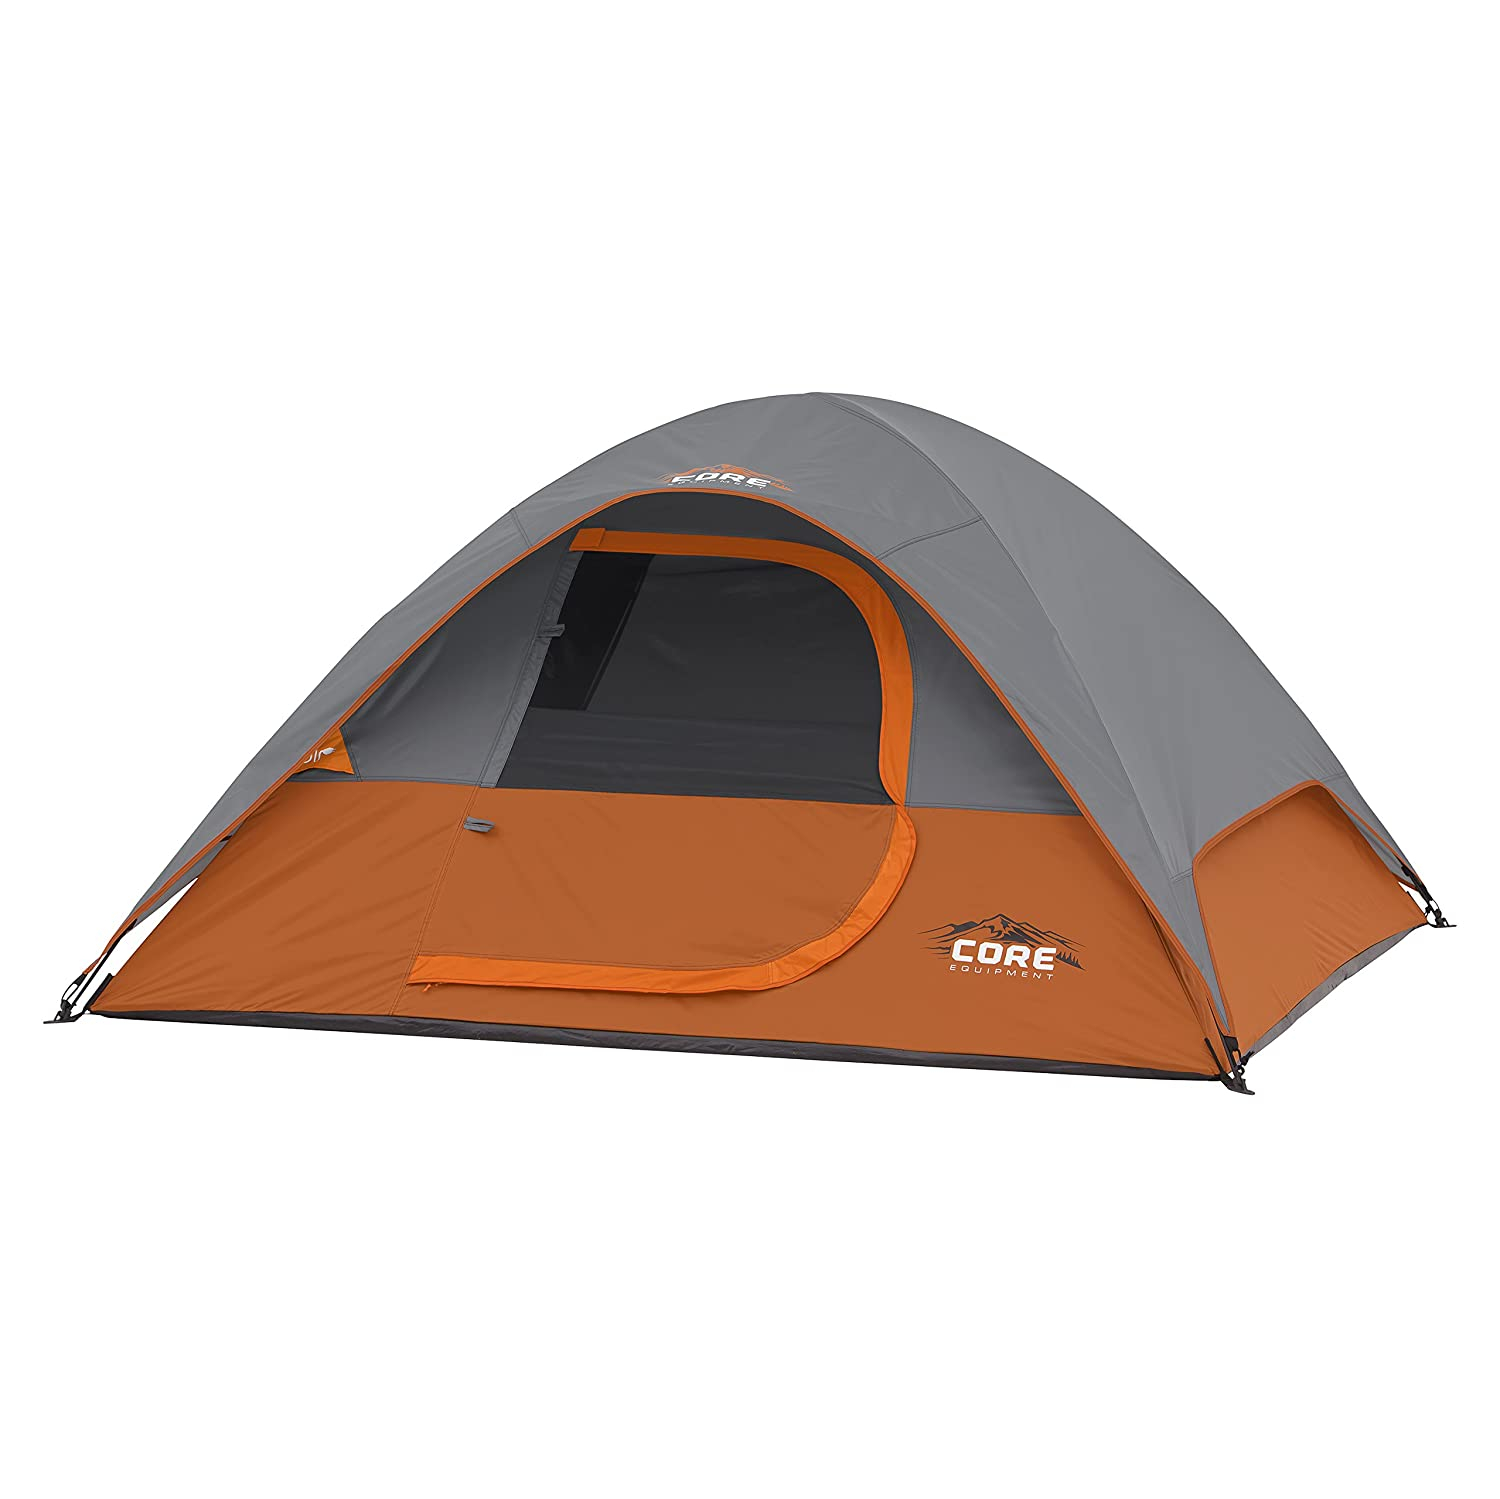 CORE 3 Person Dome Tent 7 x7